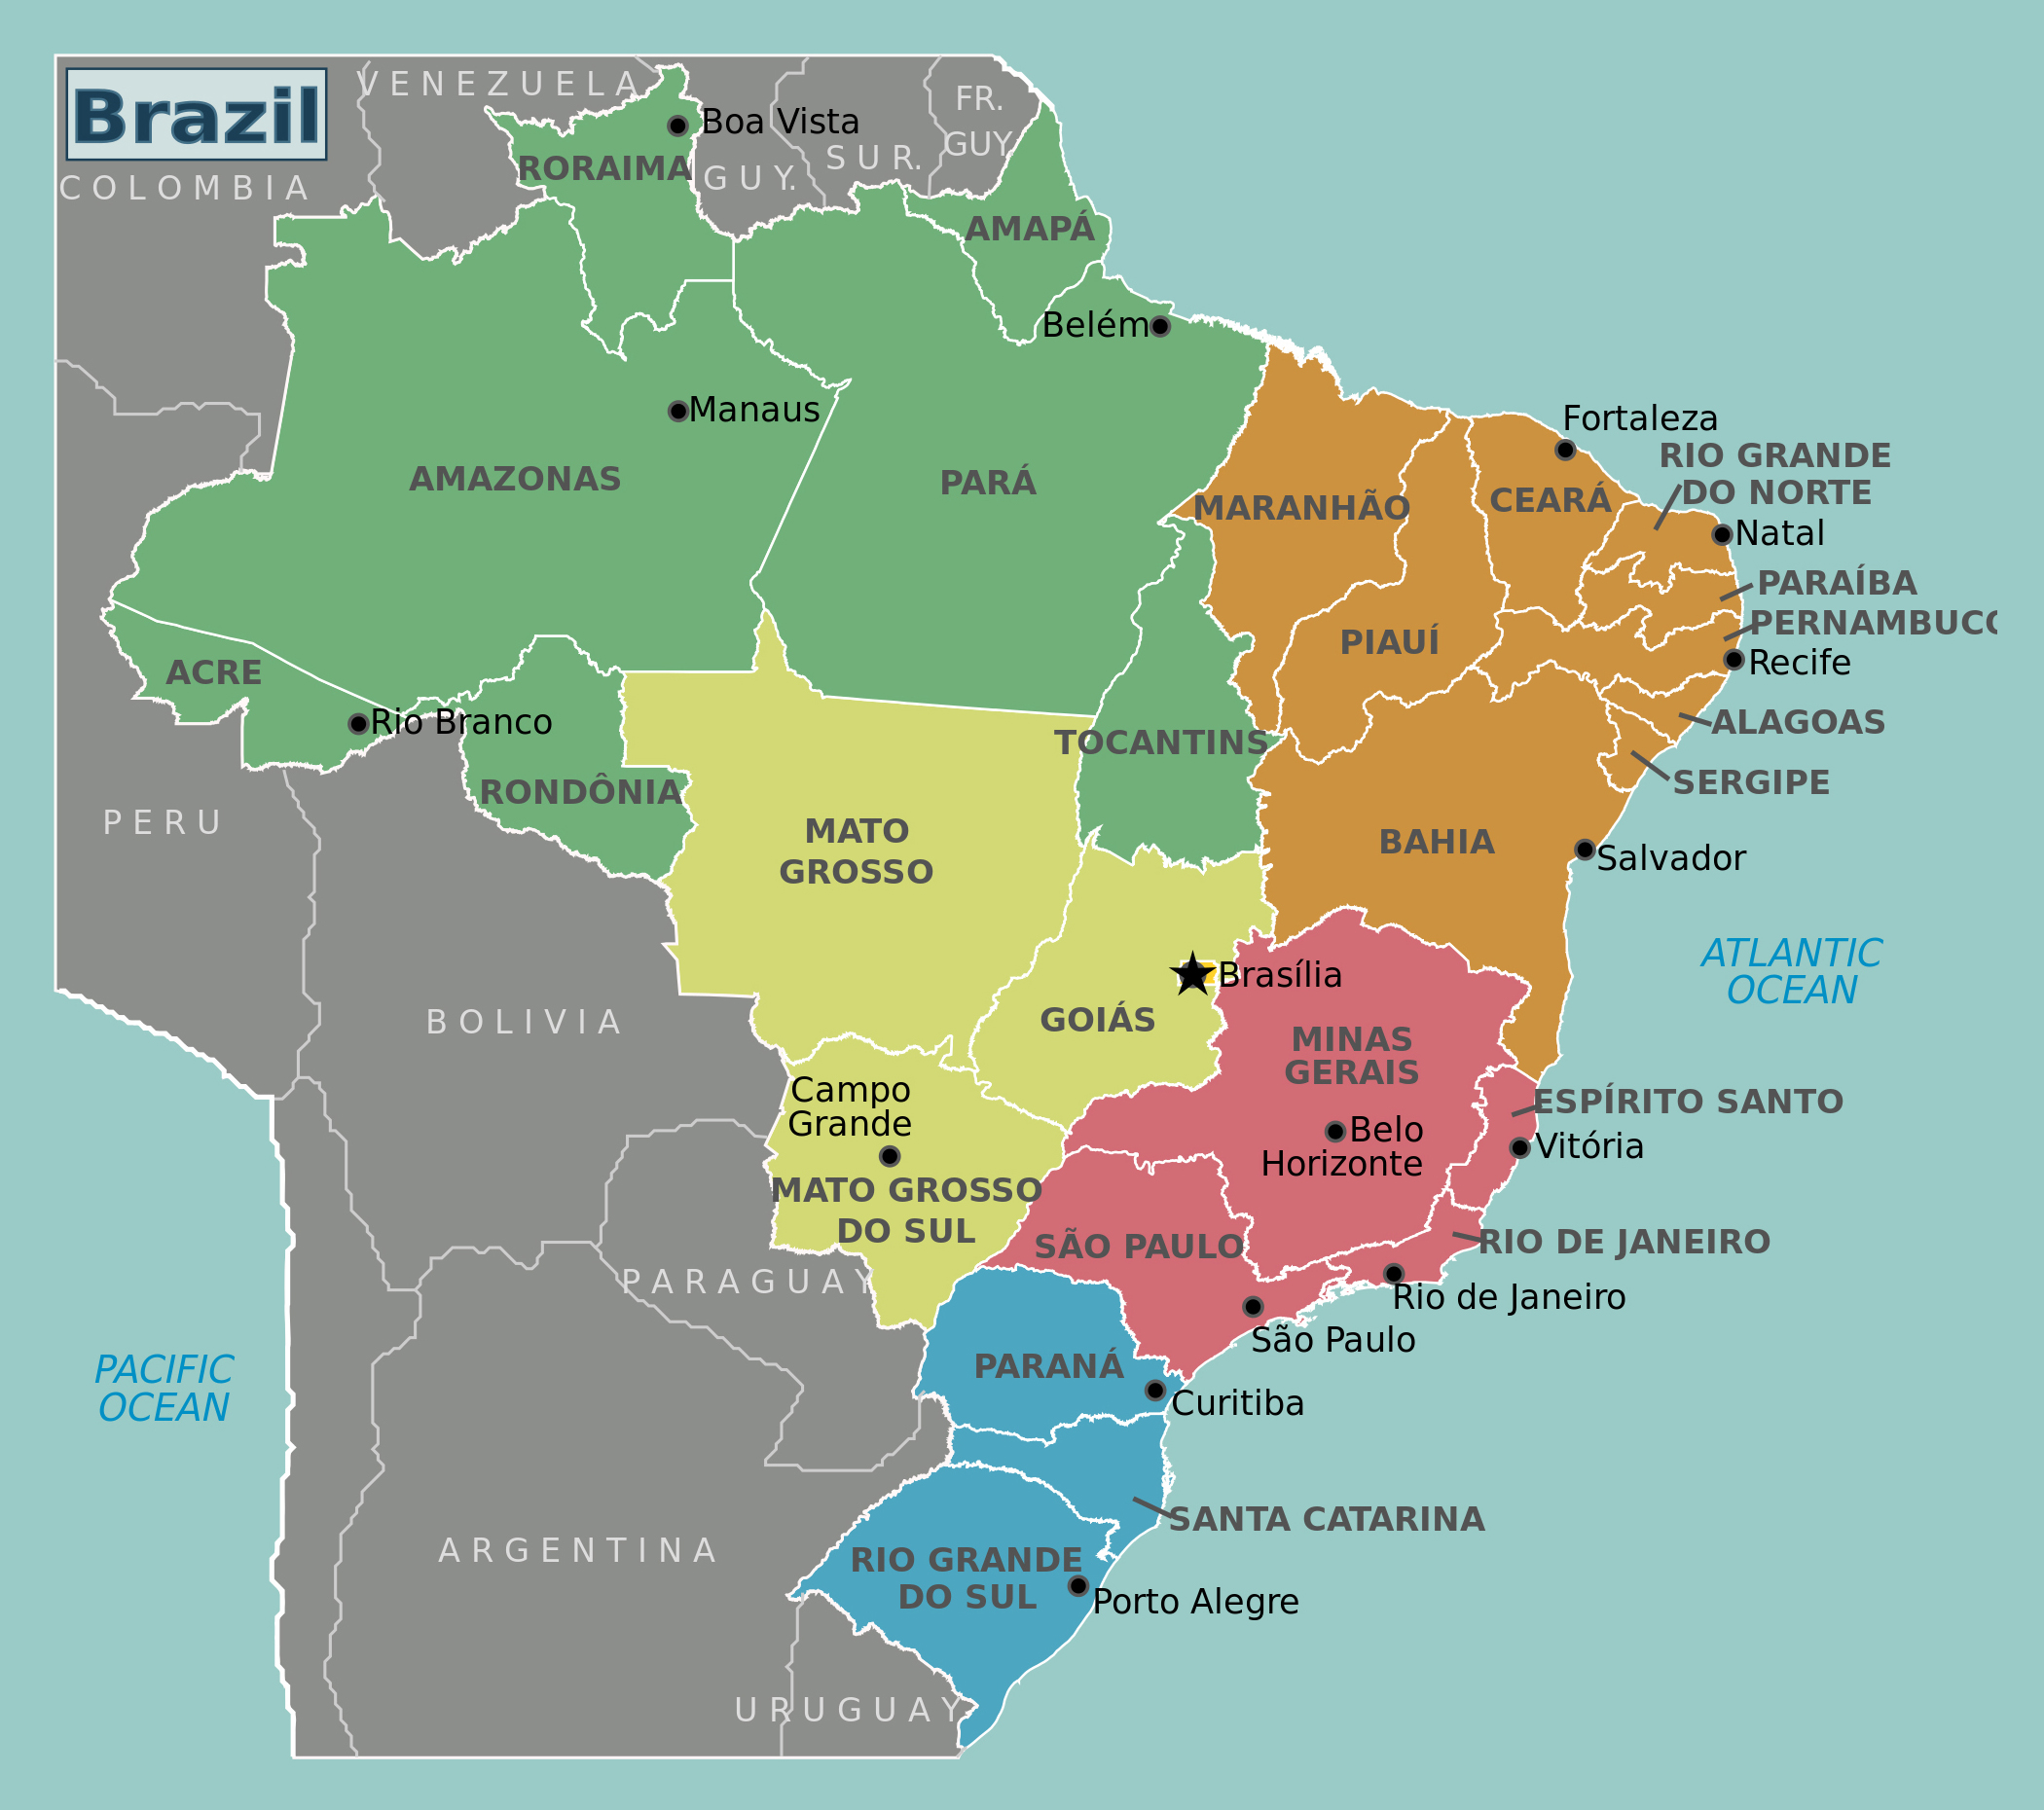 Maps Of Brazil Un mappable Fascism: What maps can (and can't) explain about the  Maps Of Brazil